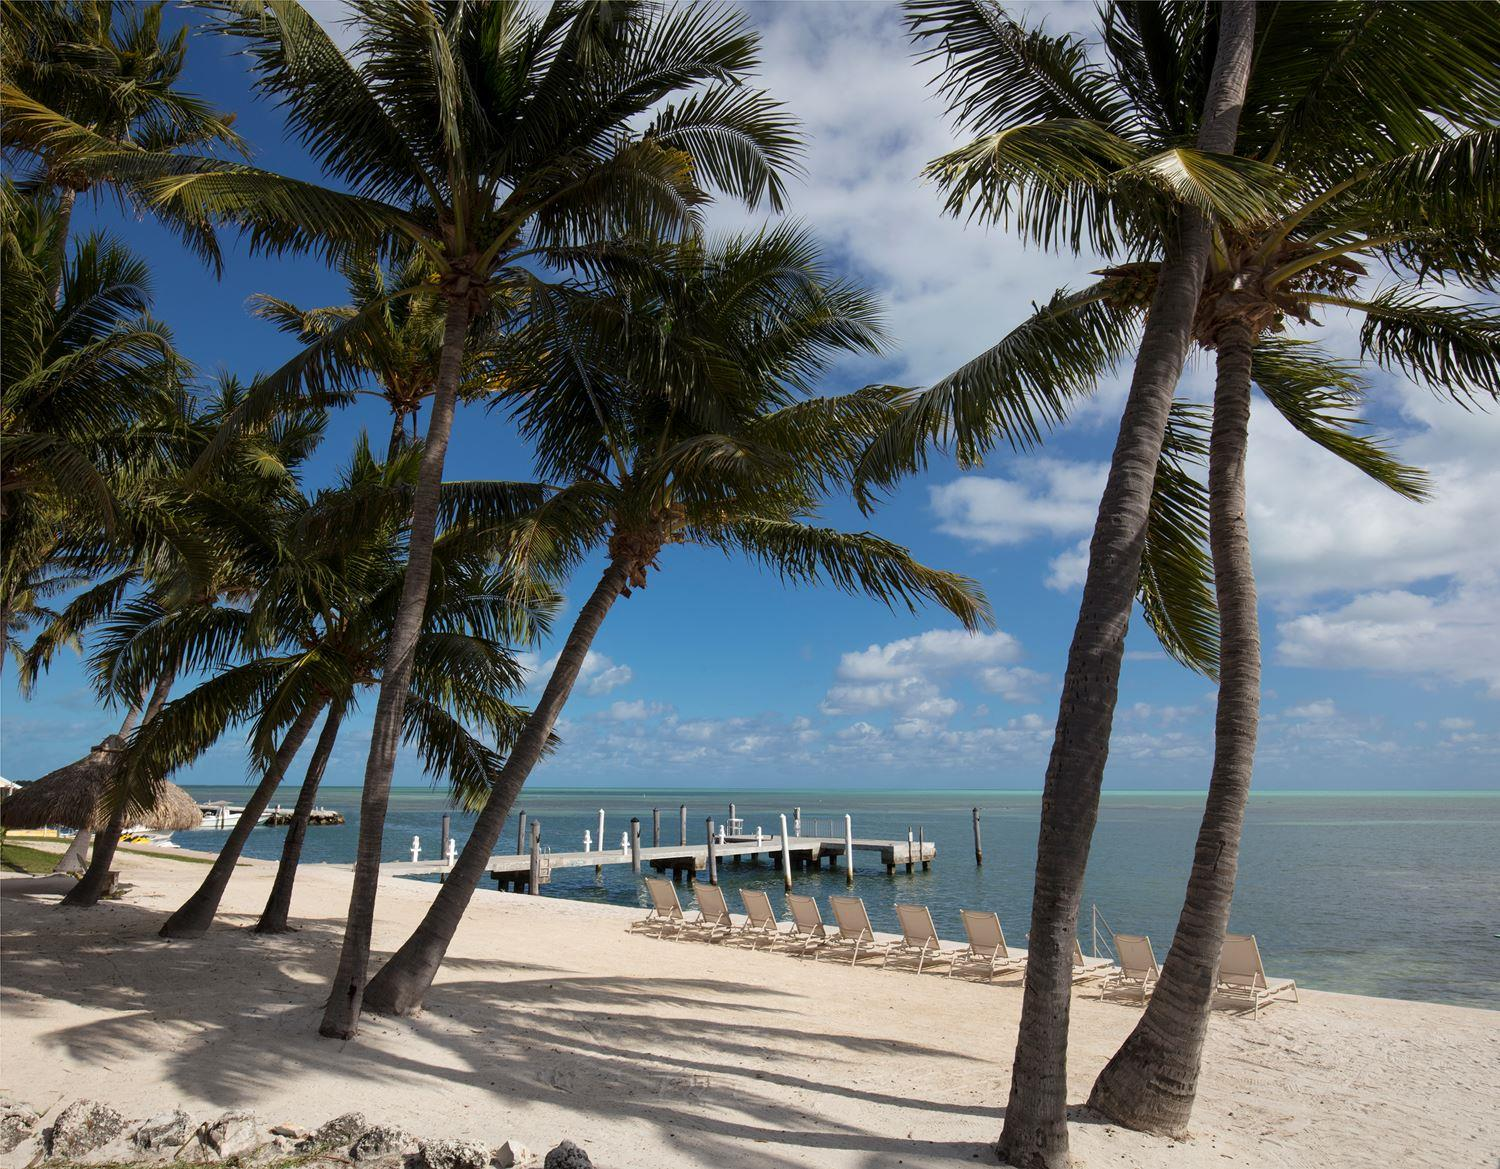 Amara Cay Resort beach and pier. (Photo courtesy of the hotel).